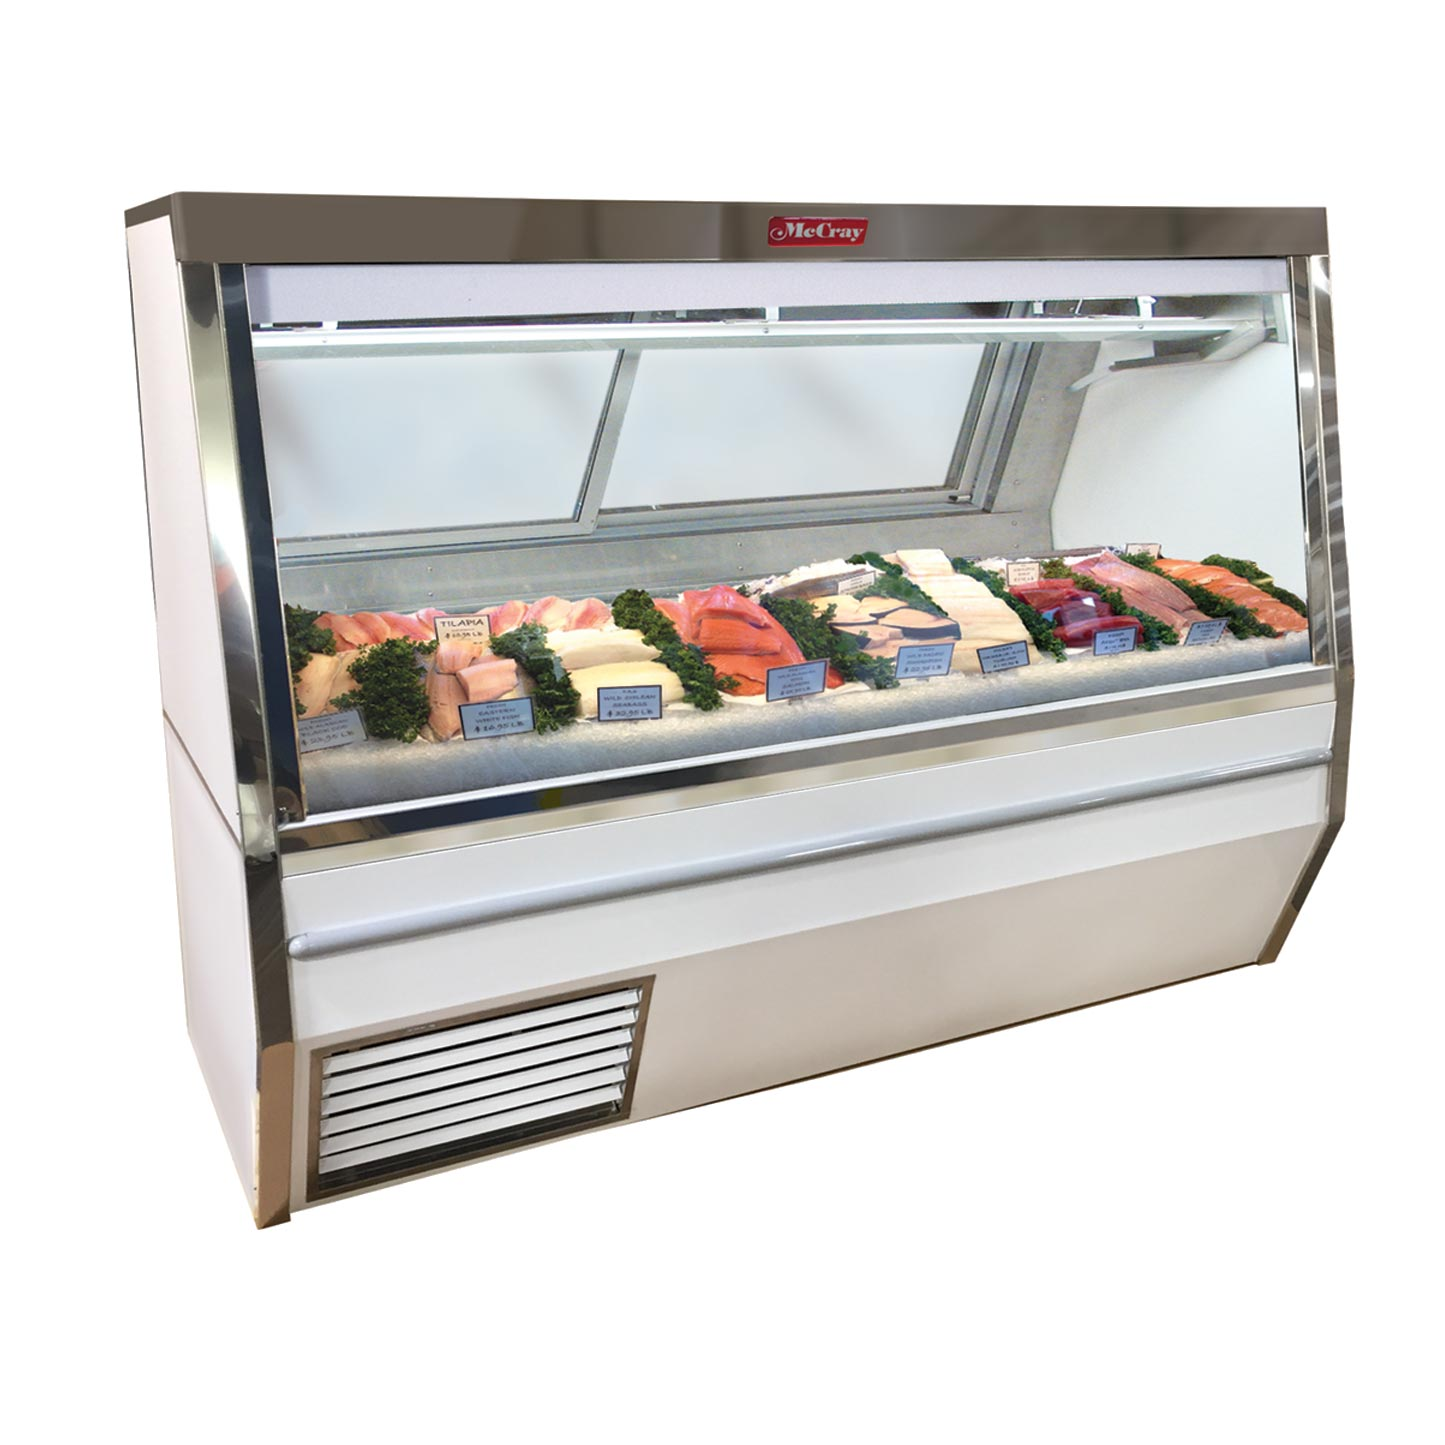 Howard-McCray R-CFS34N-4-BE-LED display case, deli seafood / poultry